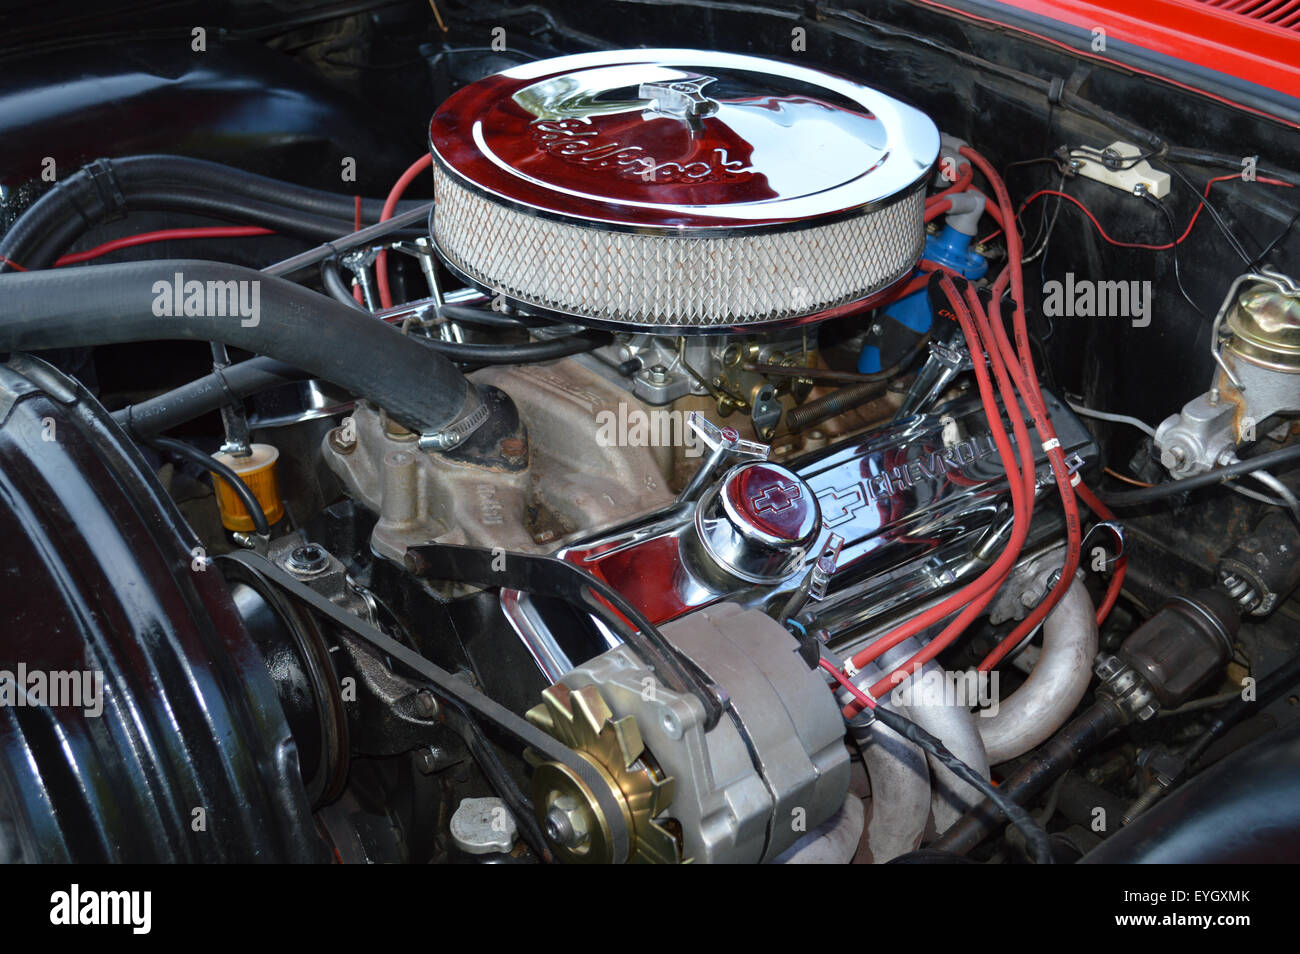 "chevrolet s small block engine The small block chevy engine wasn't the first v8 engine heck, it wasn't even chevrolet's first v8 engine (chevy's ""series d"" v8 engine was offered from 1917-'19)."